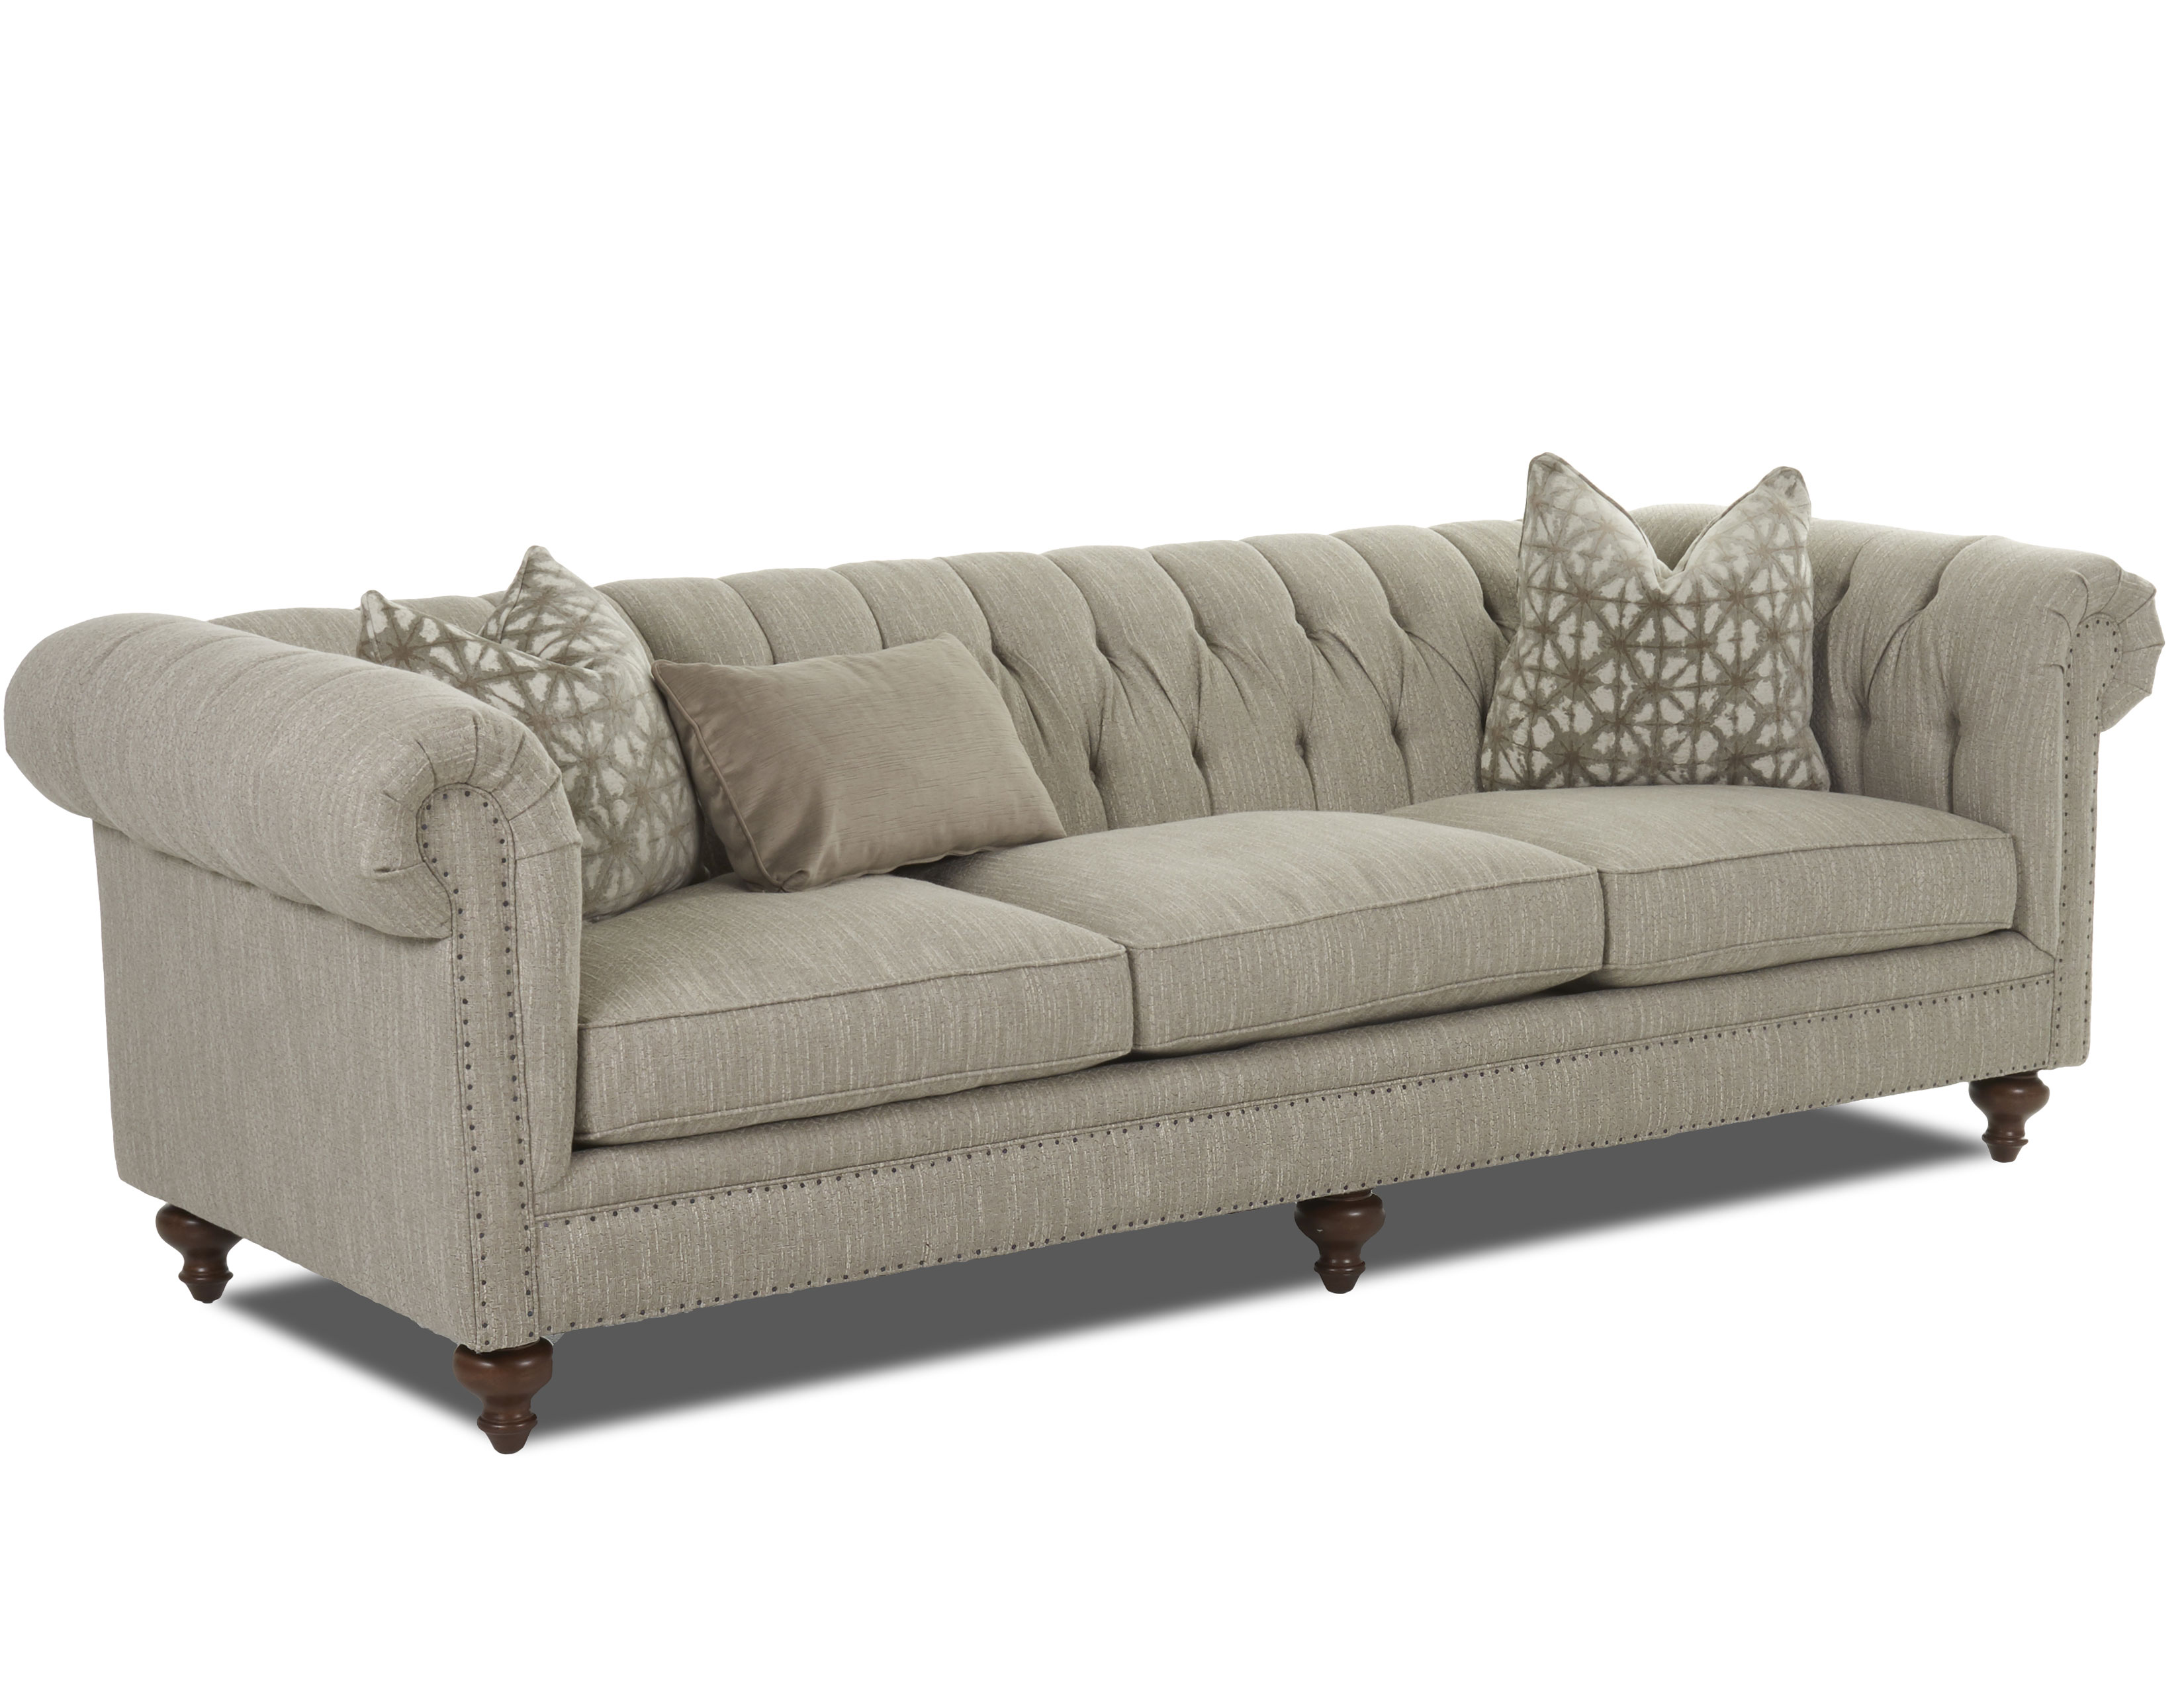 Charlotte 109 Extra Large Sofa With